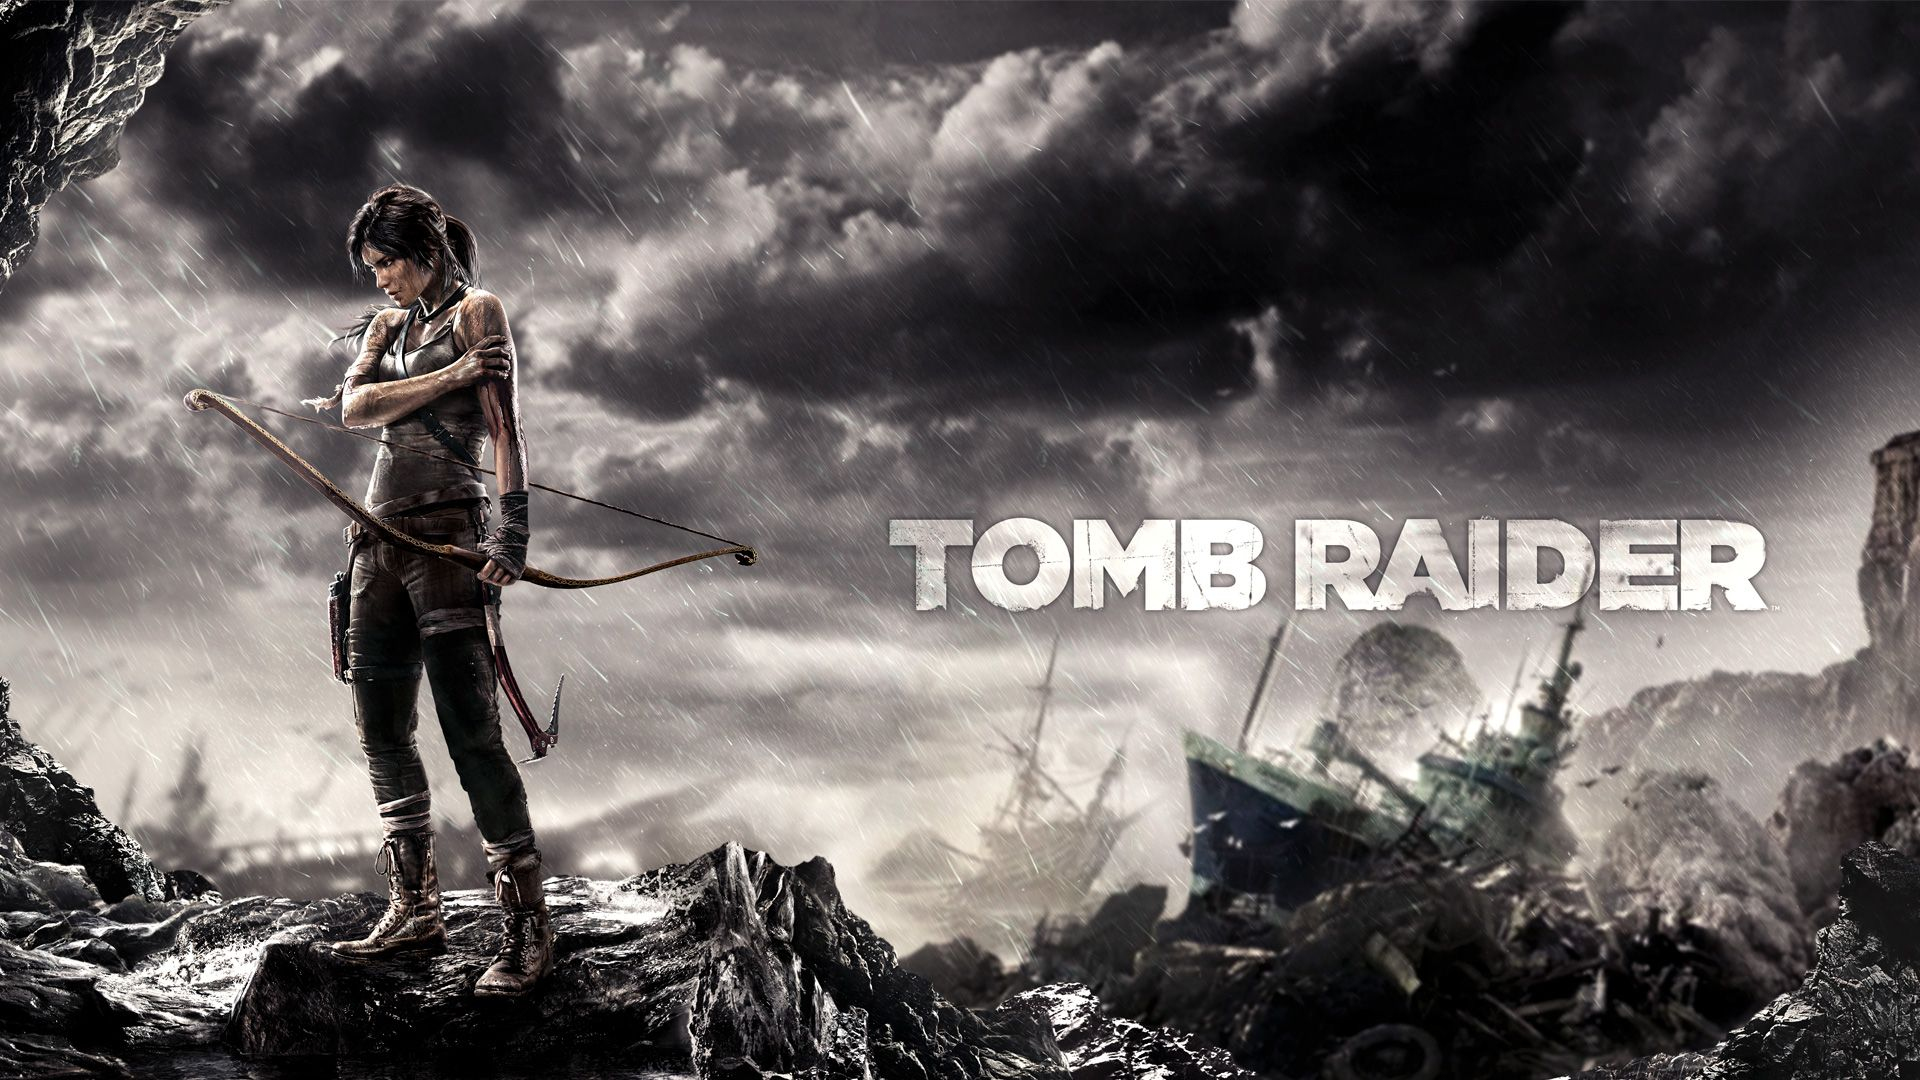 tomb raider computer backgrounds wallpaper x kB